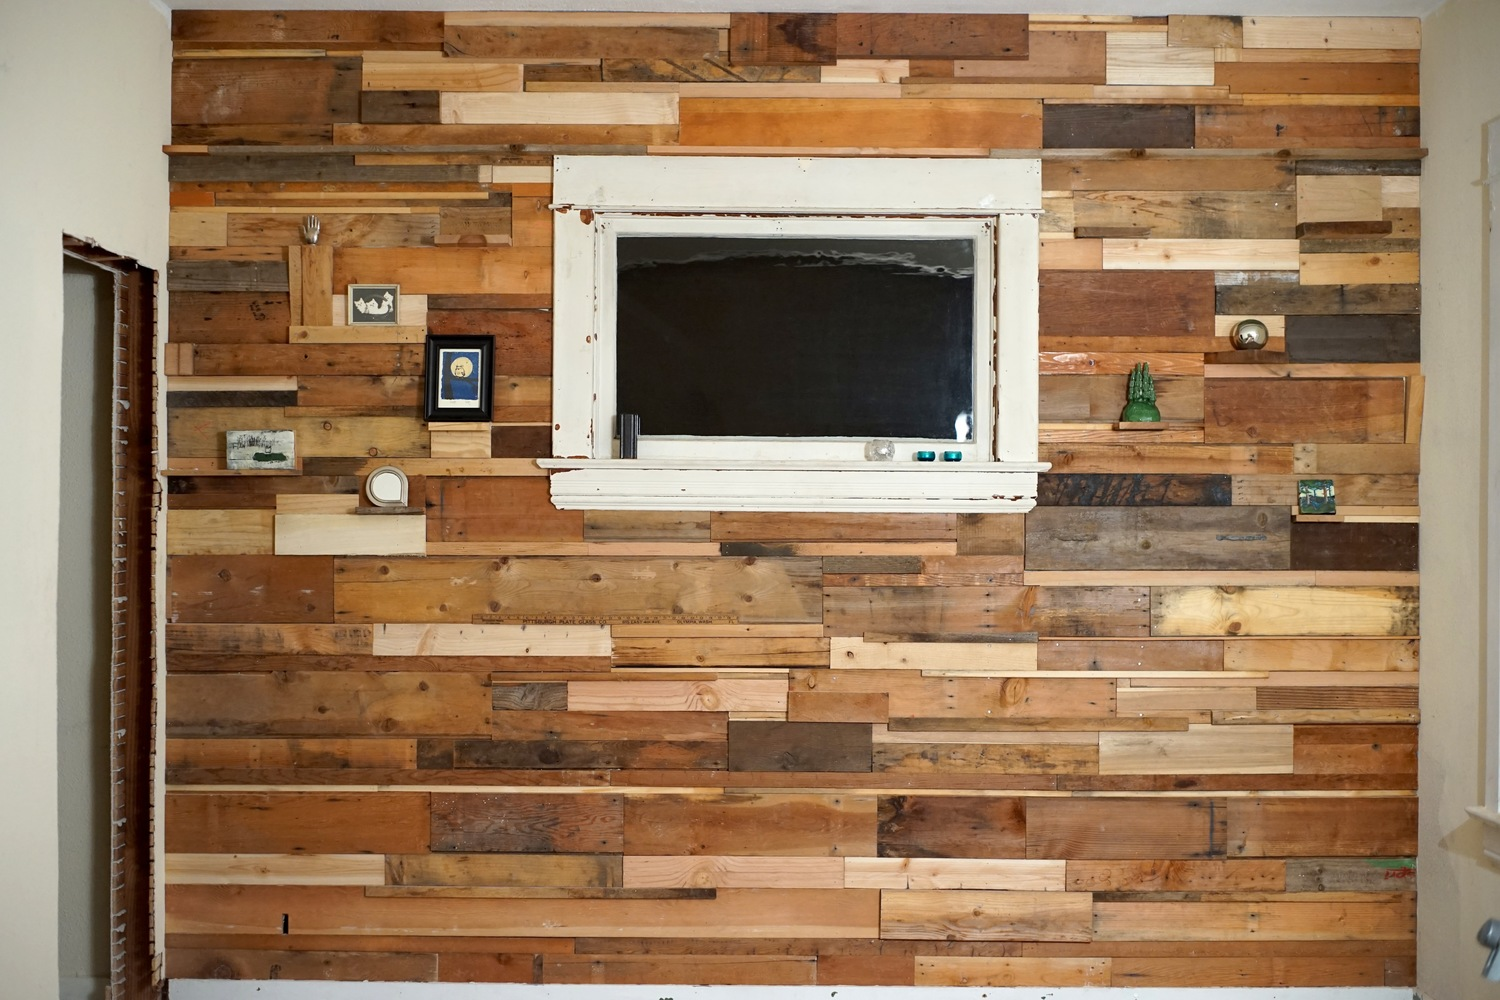 Start Diy Home Projects With Salvage And Reuse Resourceful Pdx